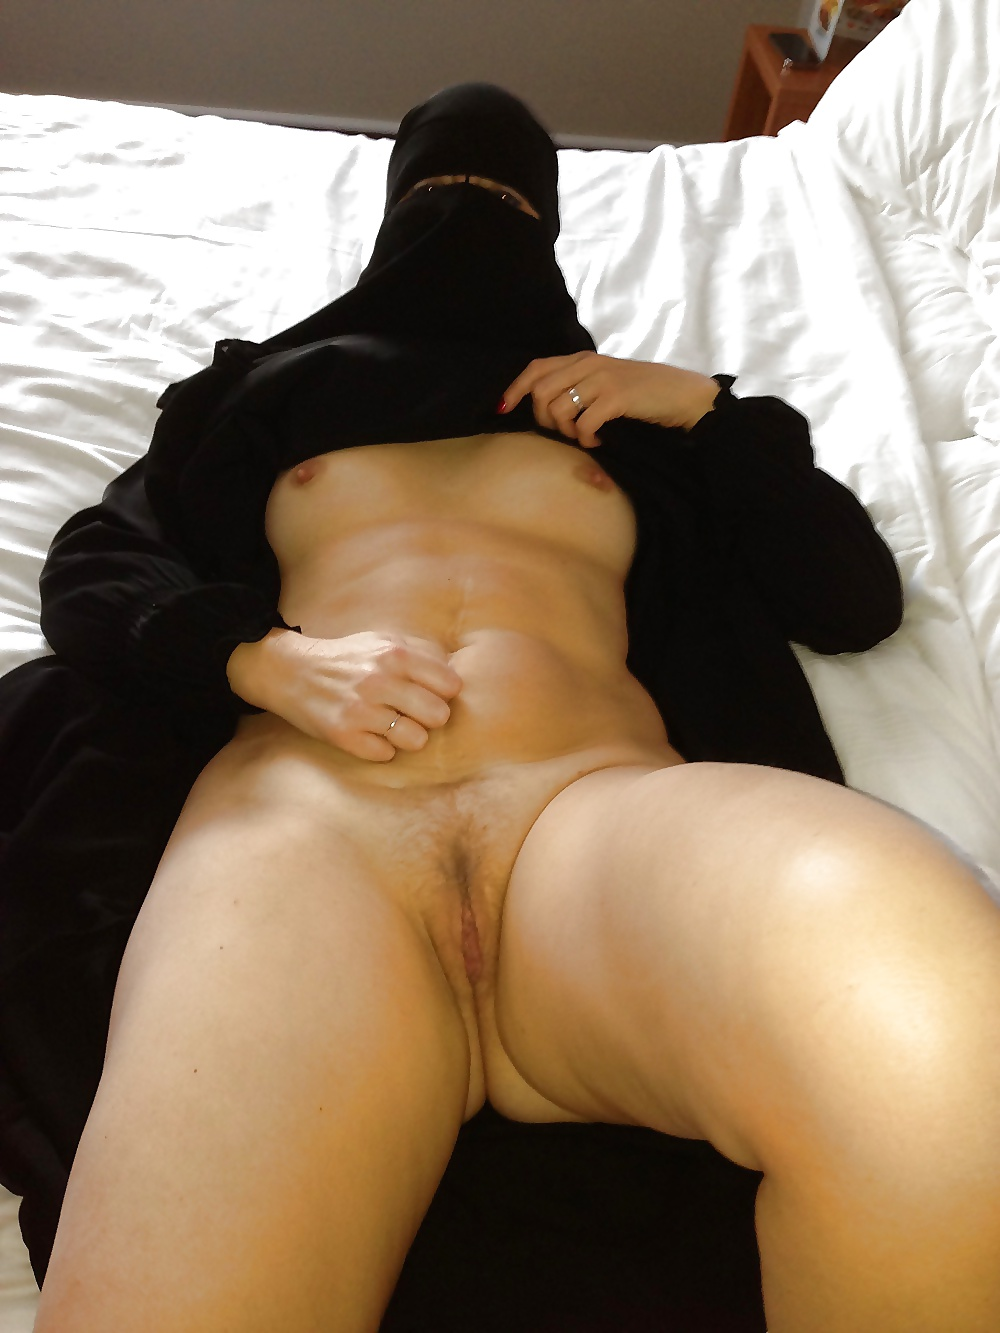 The ass free arab amateur porn photo